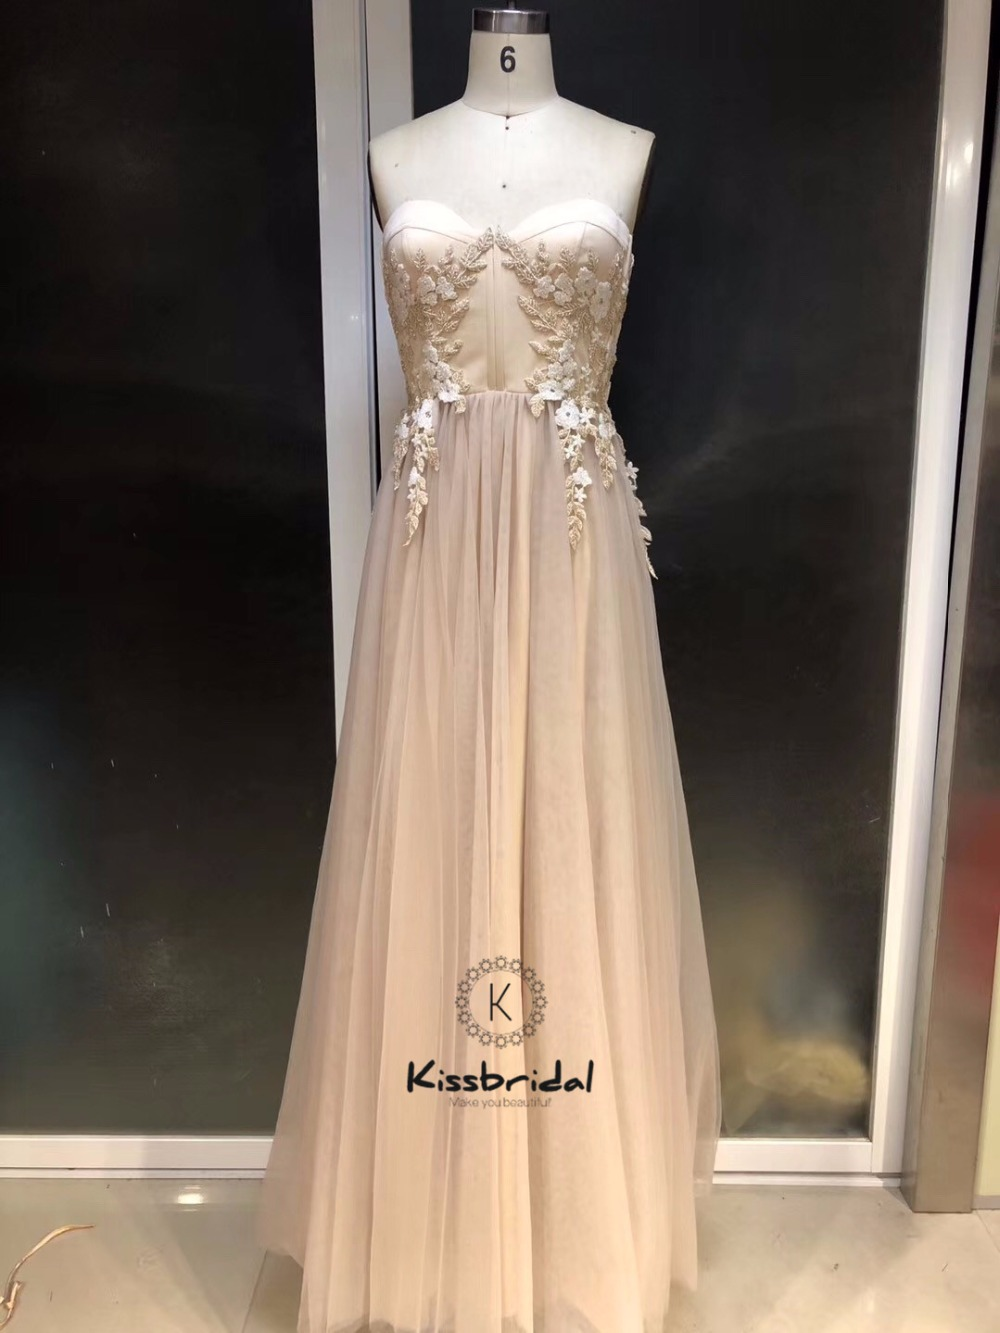 Elegant A-line   Prom     Dresses   Long 2019 Sweetheart Neckline Appliques Tulle Evening   Dress   Party Gown